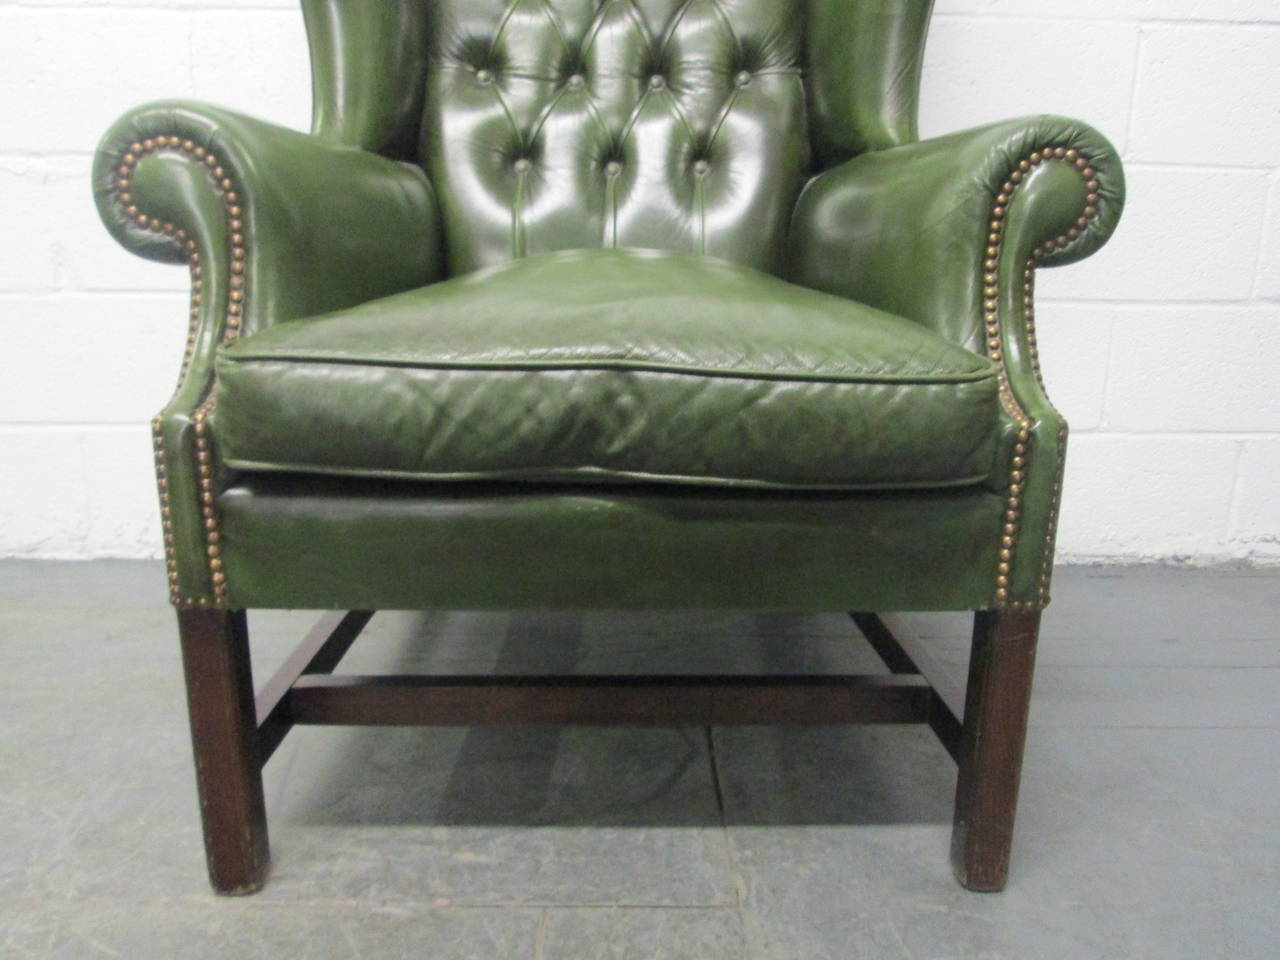 vintage green leather tufted wingback chair at 1stdibs. Black Bedroom Furniture Sets. Home Design Ideas